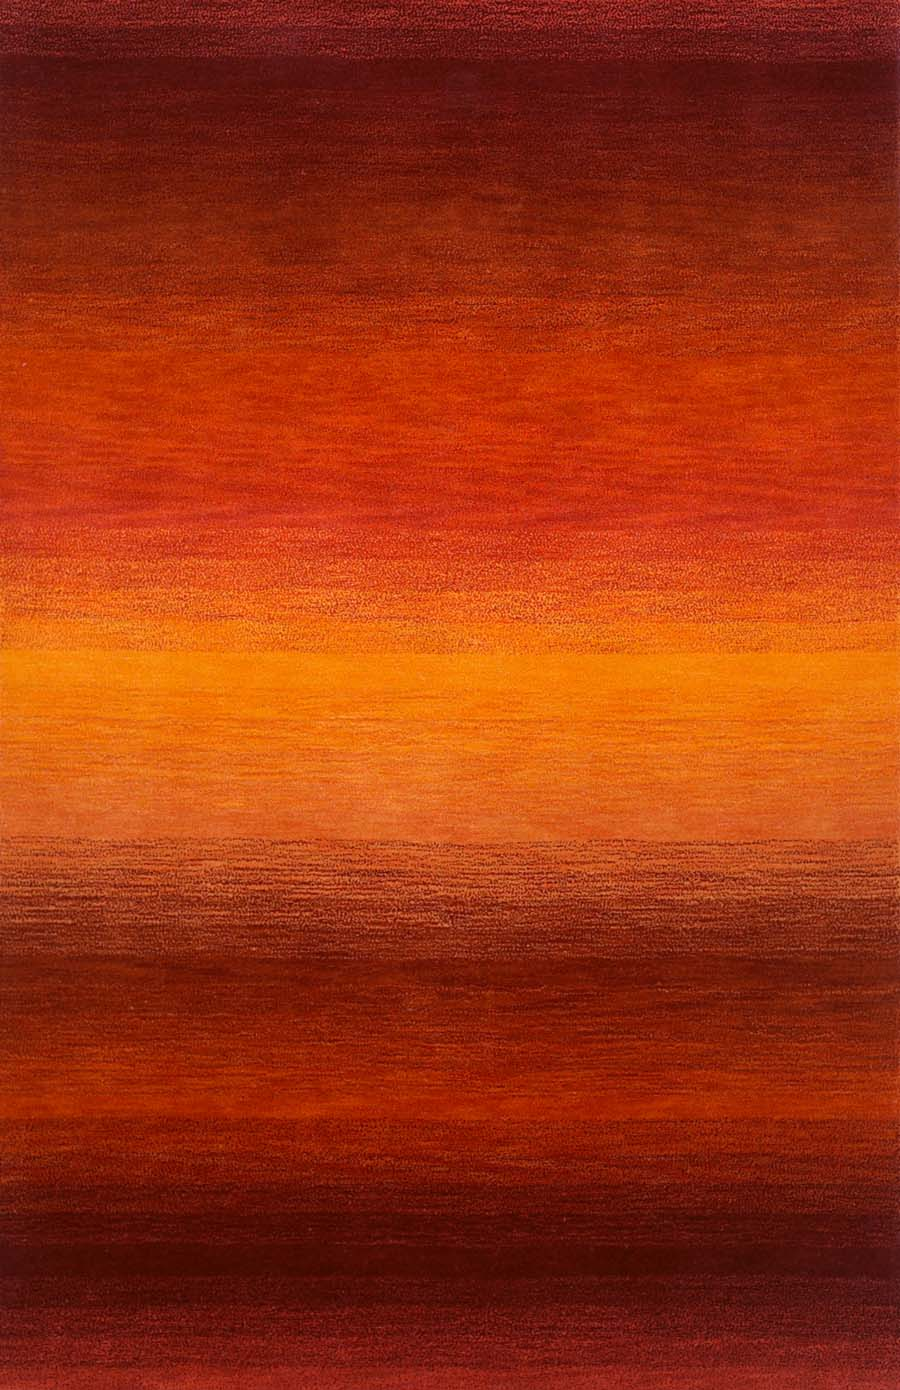 Ombre 9620 / 18 Sunrise Rug by Trans-Ocean